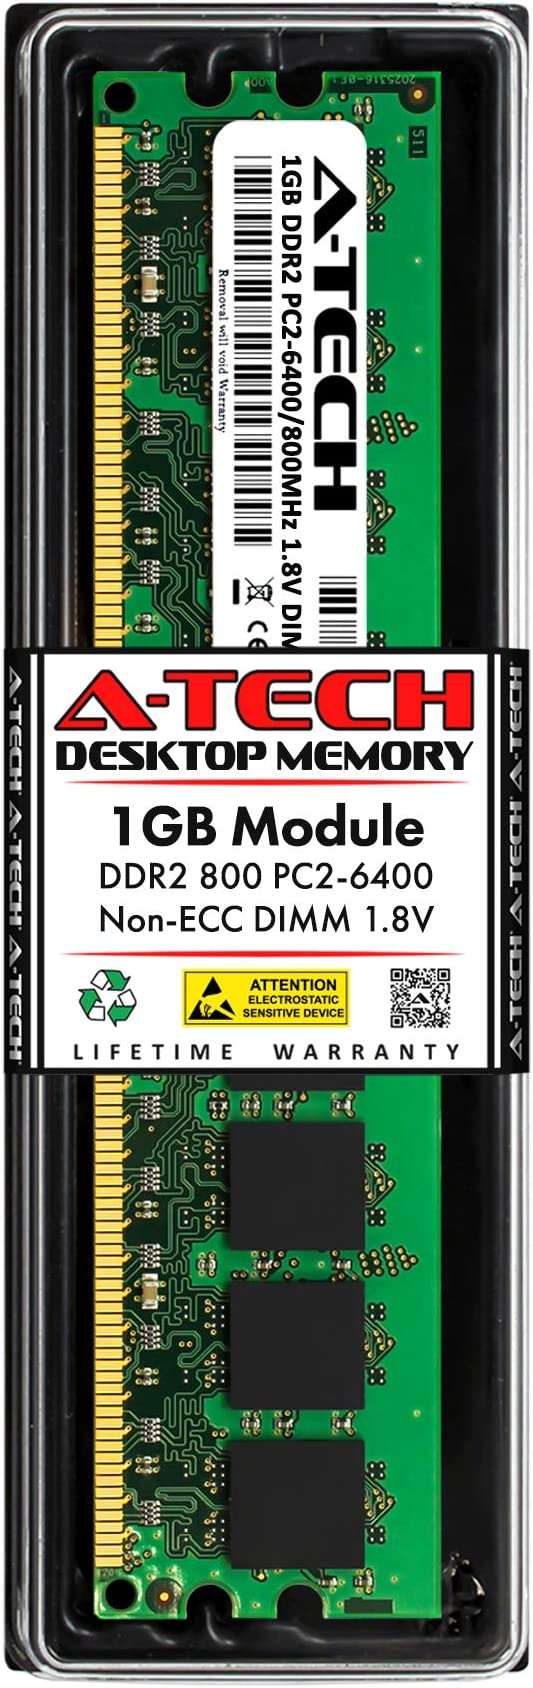 RAM Memory Upgrade for The ASUS N Series N50VN-D1 1GB DDR2-800 PC2-6400